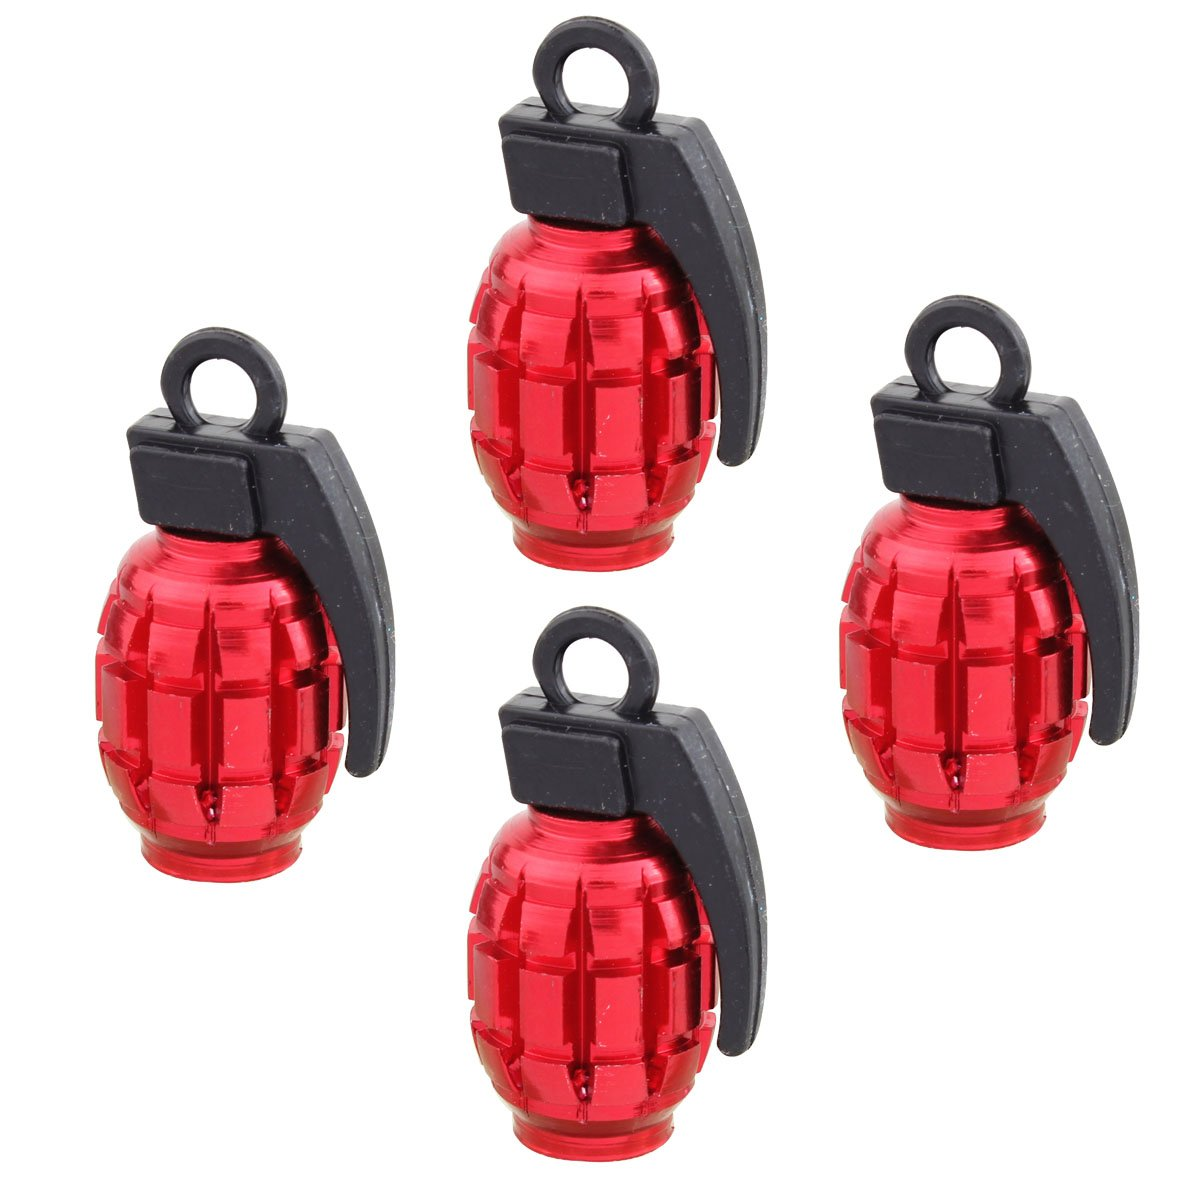 TOMALL Grenade Tire Valve Stem Caps Black + Red + Gray 3 Set by TOMALL (Image #4)